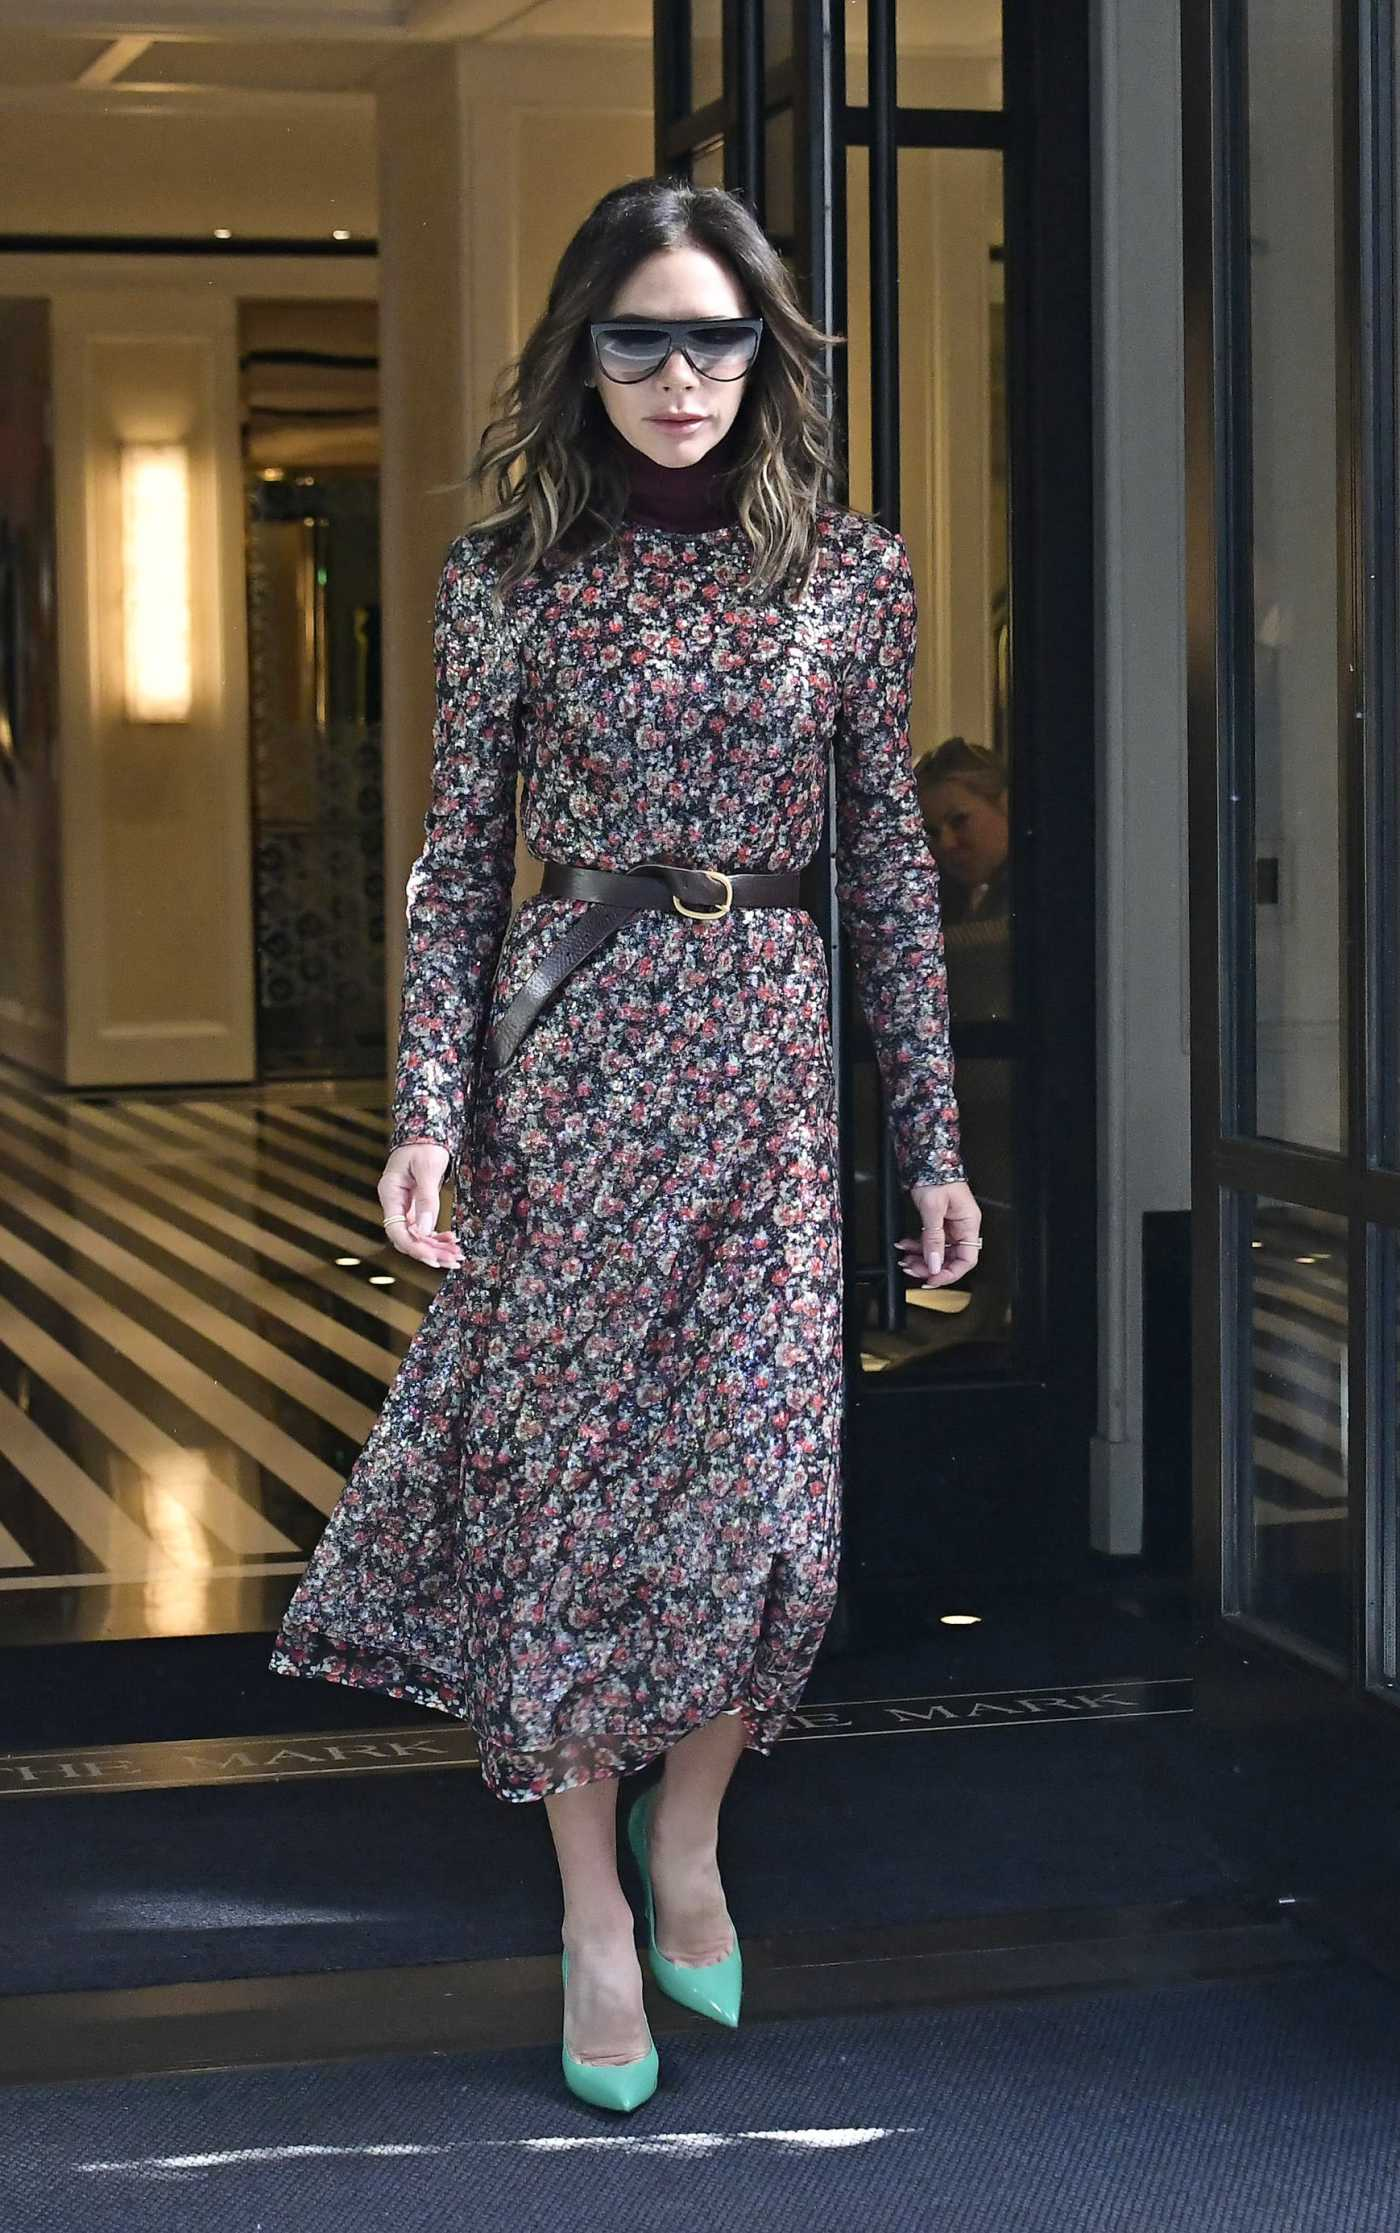 Victoria Beckham in a Floral Dress Leaves The Mark Hotel in New York 10/16/2021